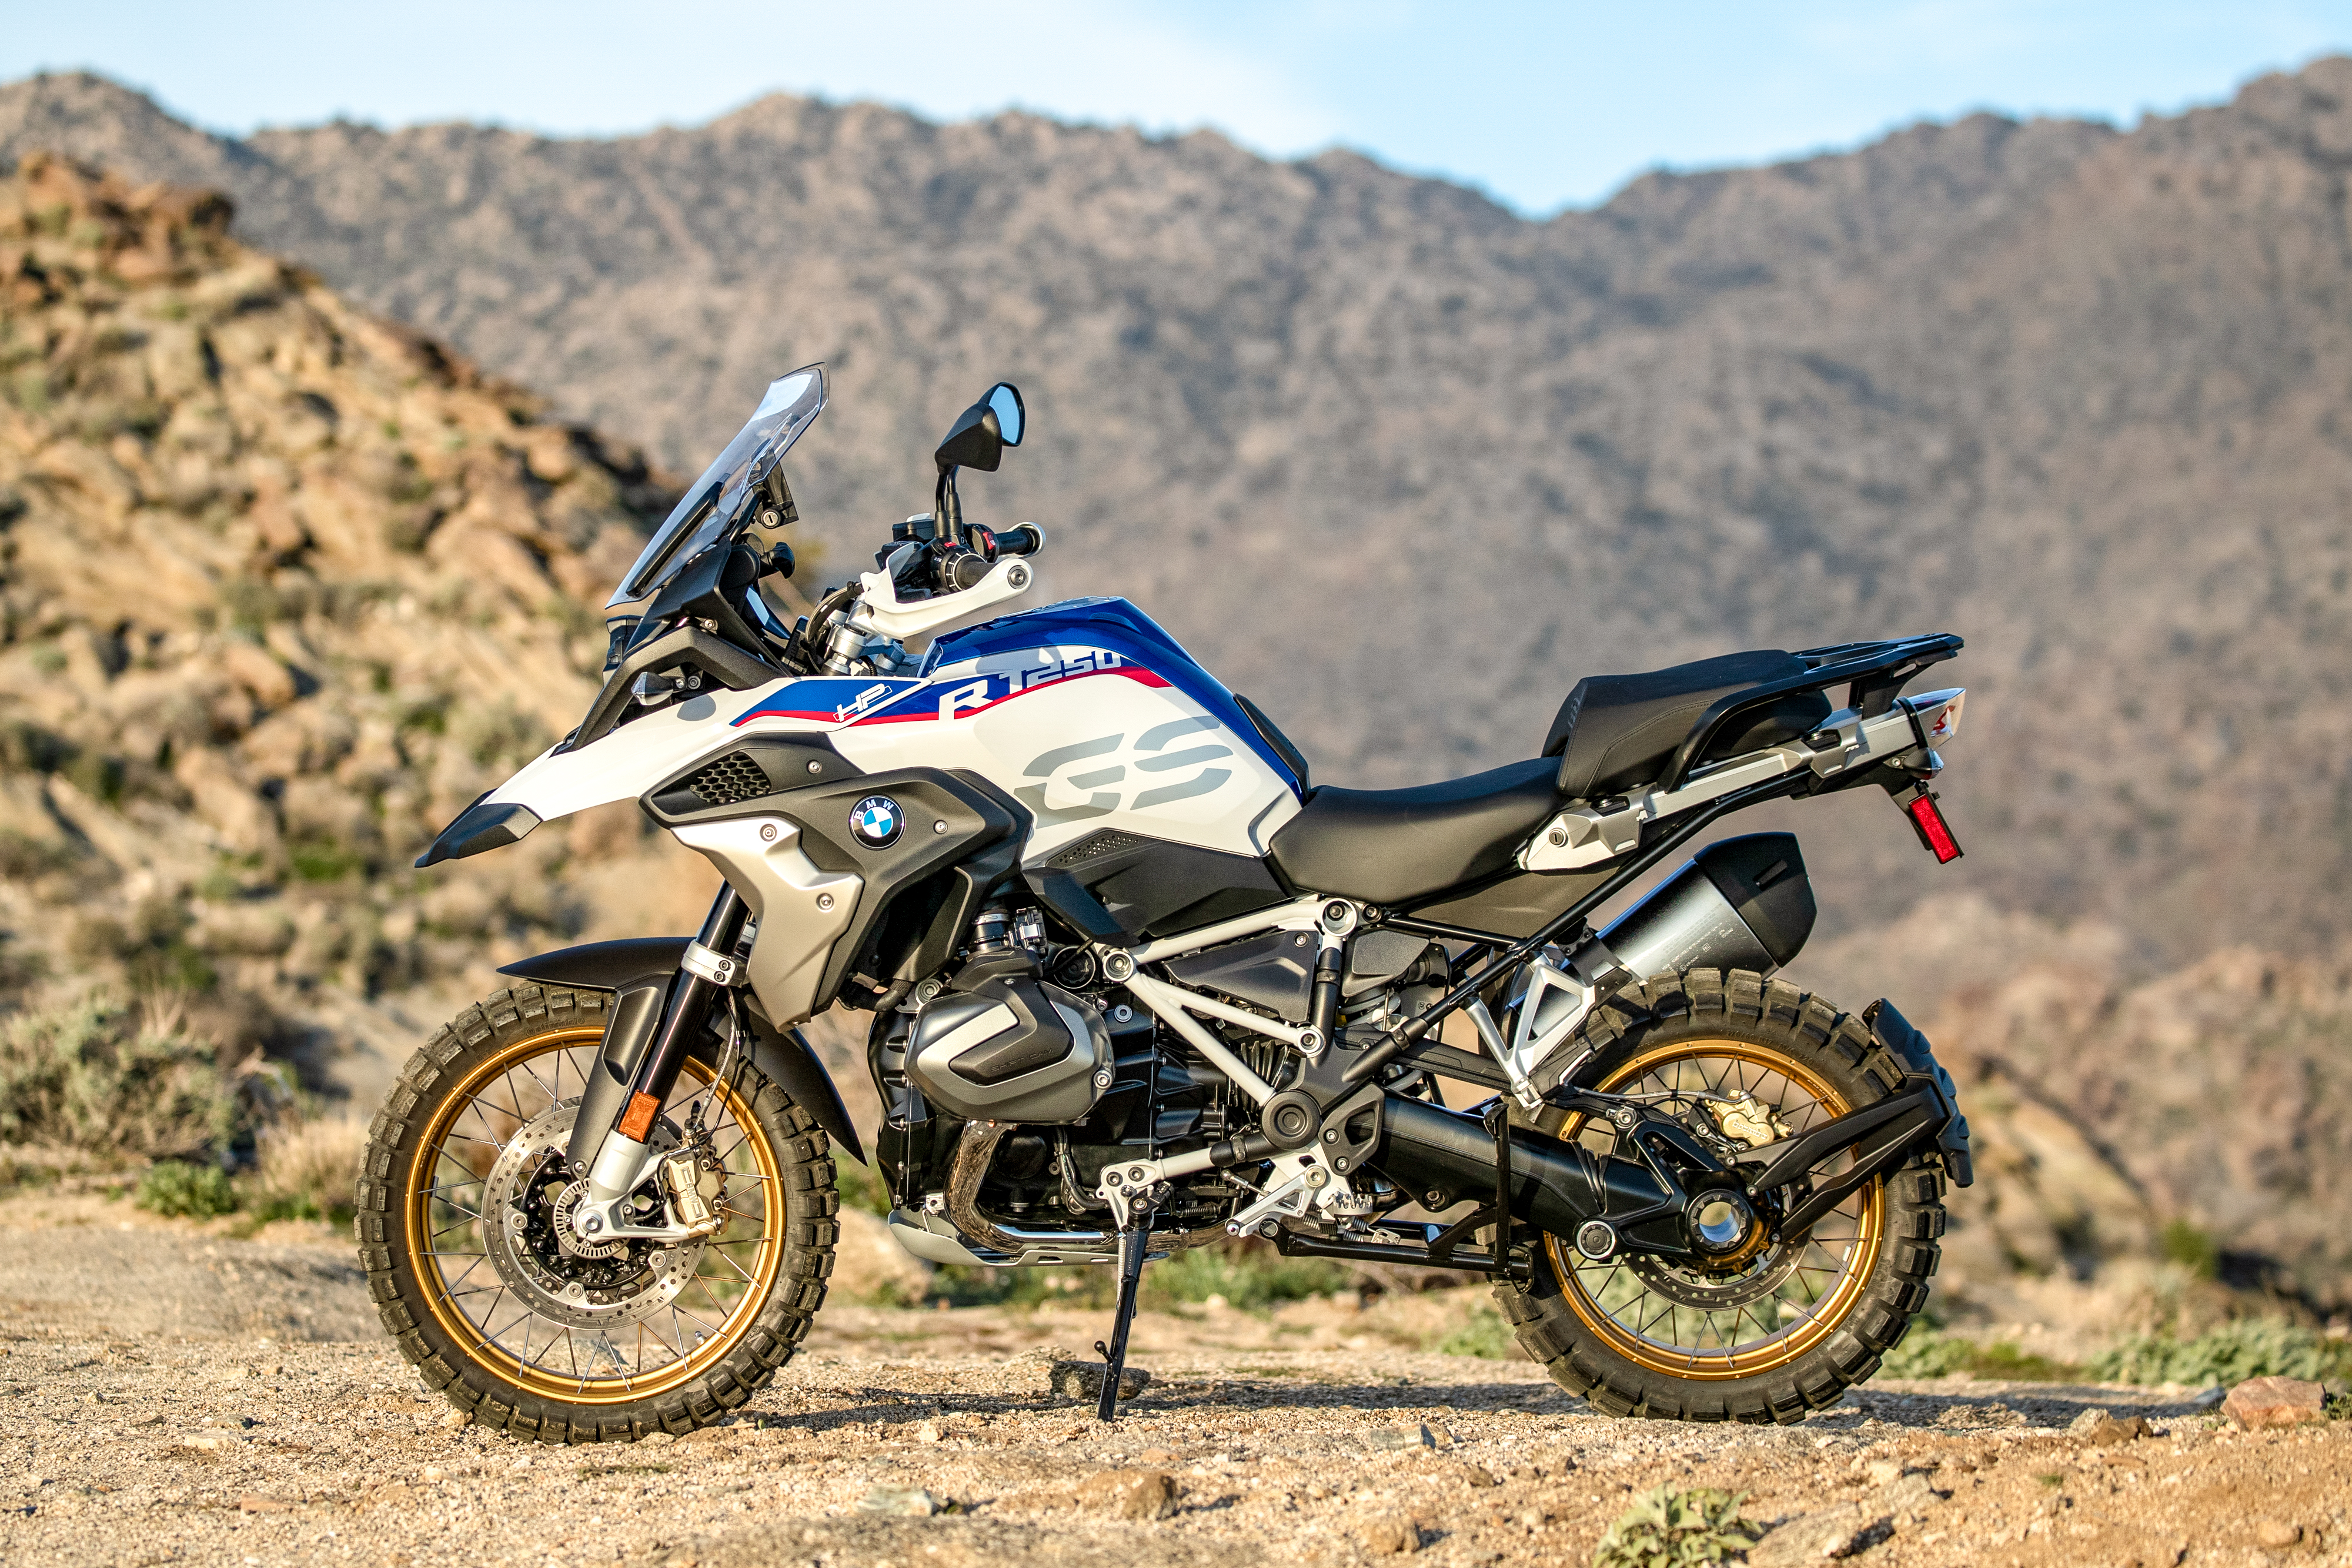 Astonishing 2019 Bmw R 1250 Gs And Gsa First Ride Review Revzilla Ocoug Best Dining Table And Chair Ideas Images Ocougorg